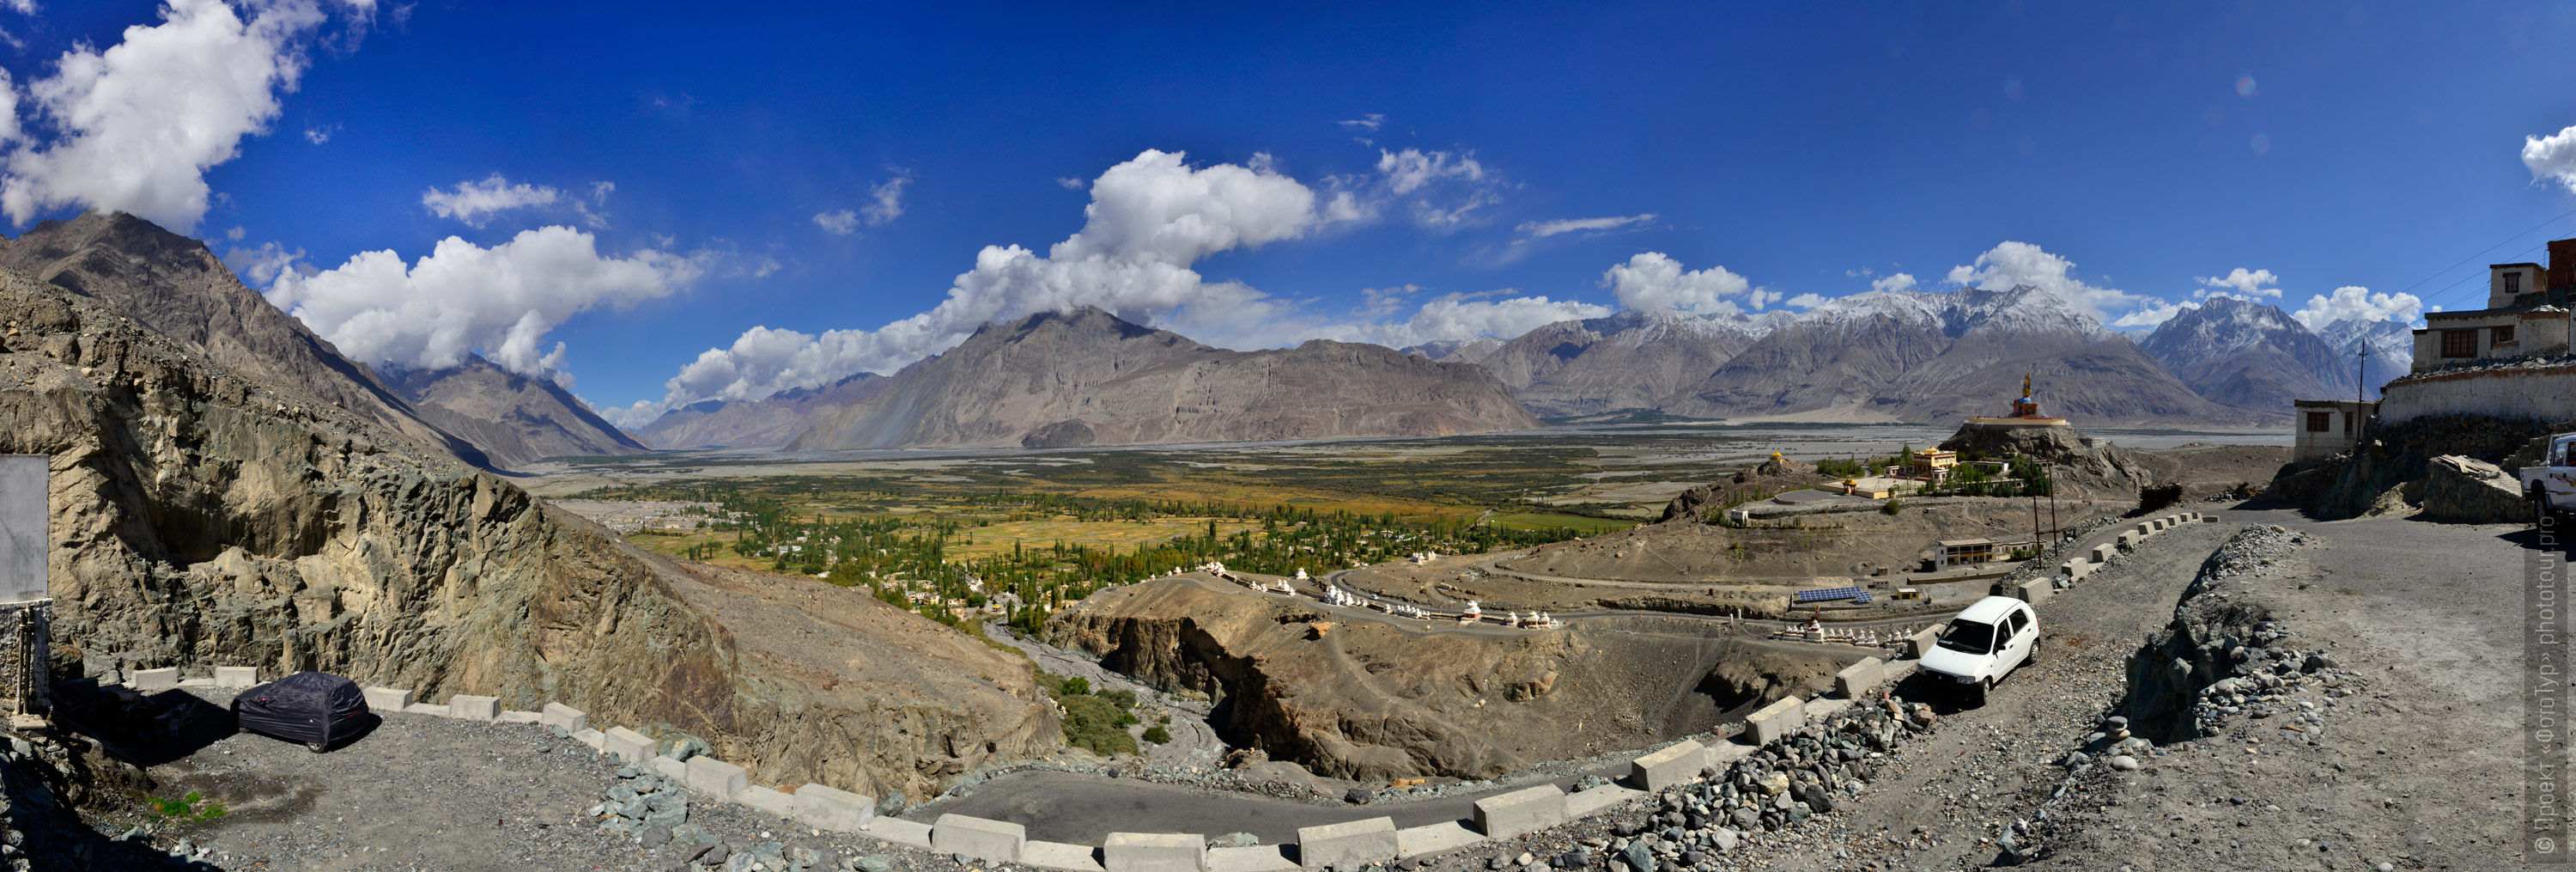 The view from the Diskit monastery in the Nubra valley. Tour Legends of Tibet: Ladakh, Lamayuru, Da Khan and Nubra, 19.09. - 28.09.2019.